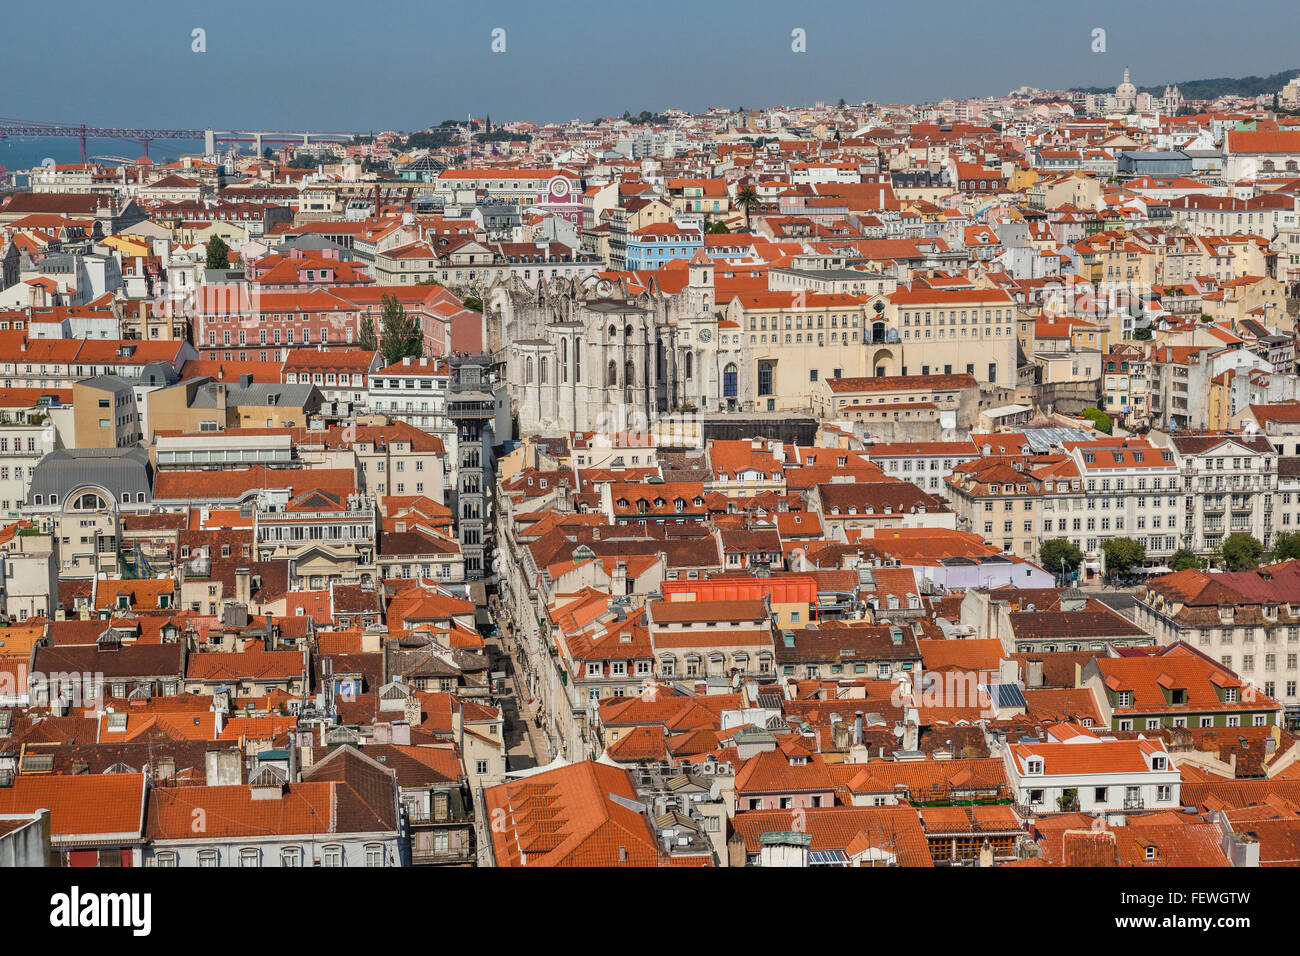 Portugal, Lisbon, view of the Baixa Pombaline, the Pombaline Downtown of Lisbon with Santa Justa Lift and Carmo - Stock Image